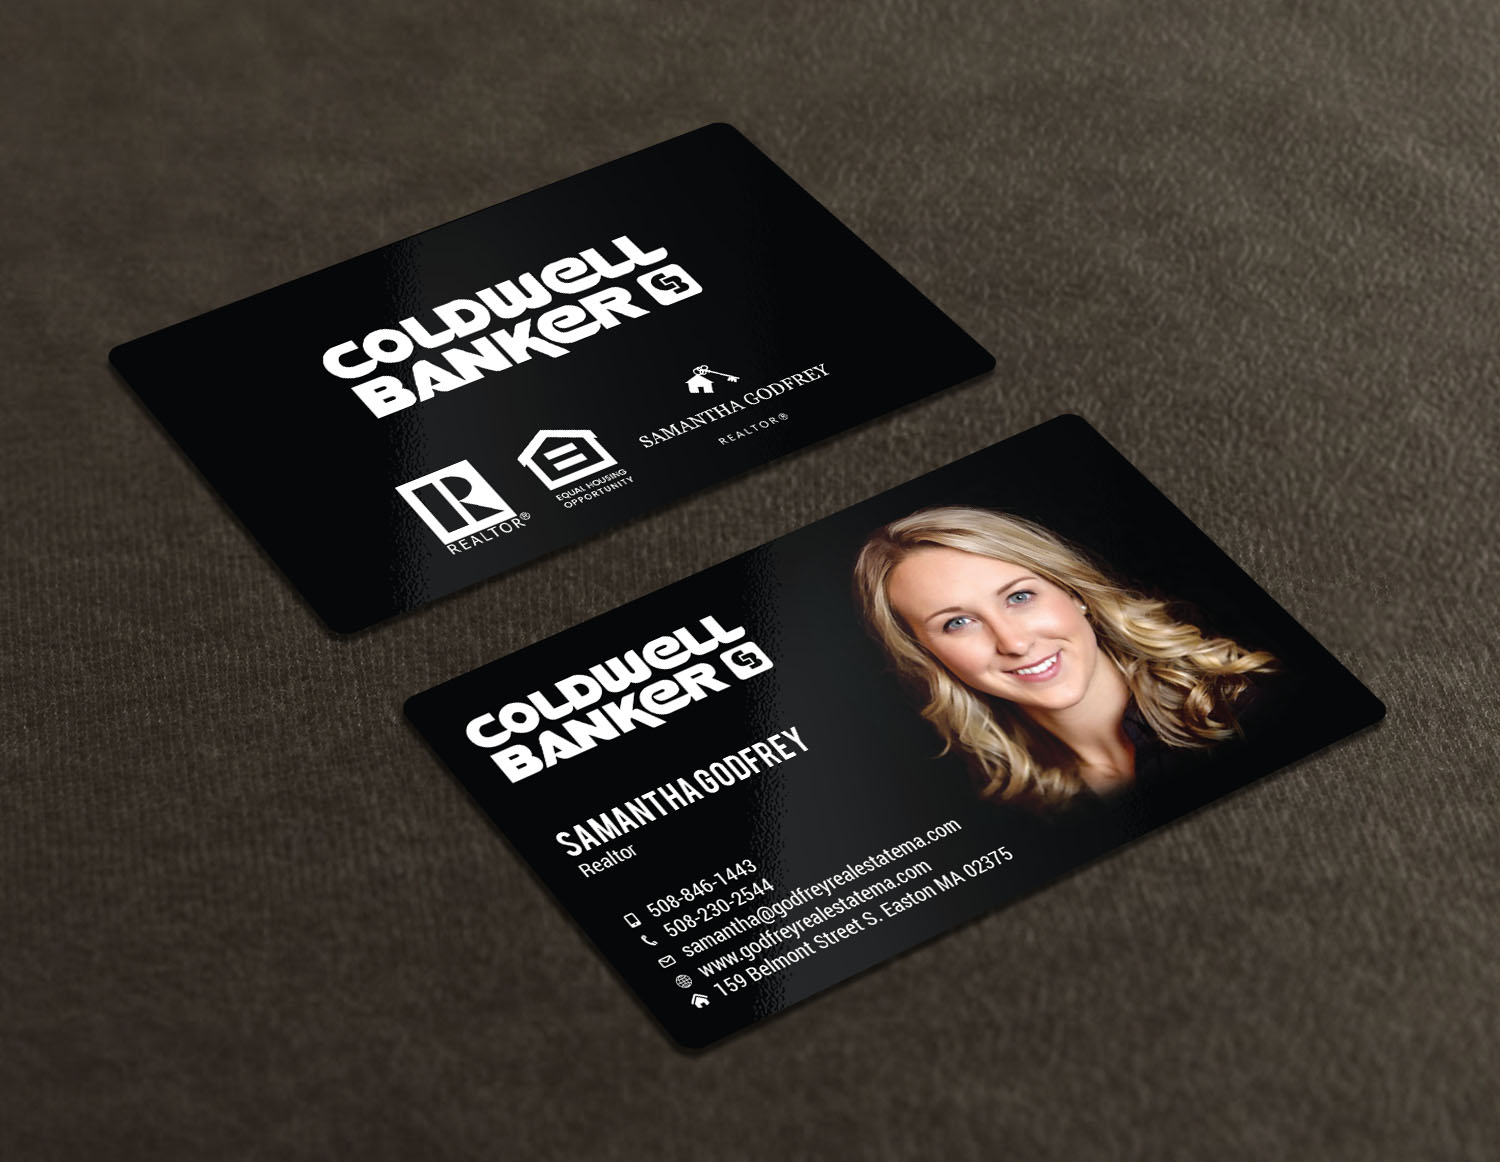 Modern professional real estate agent business card design for business card design by avanger000 for godfrey auto inc design 17847966 reheart Gallery